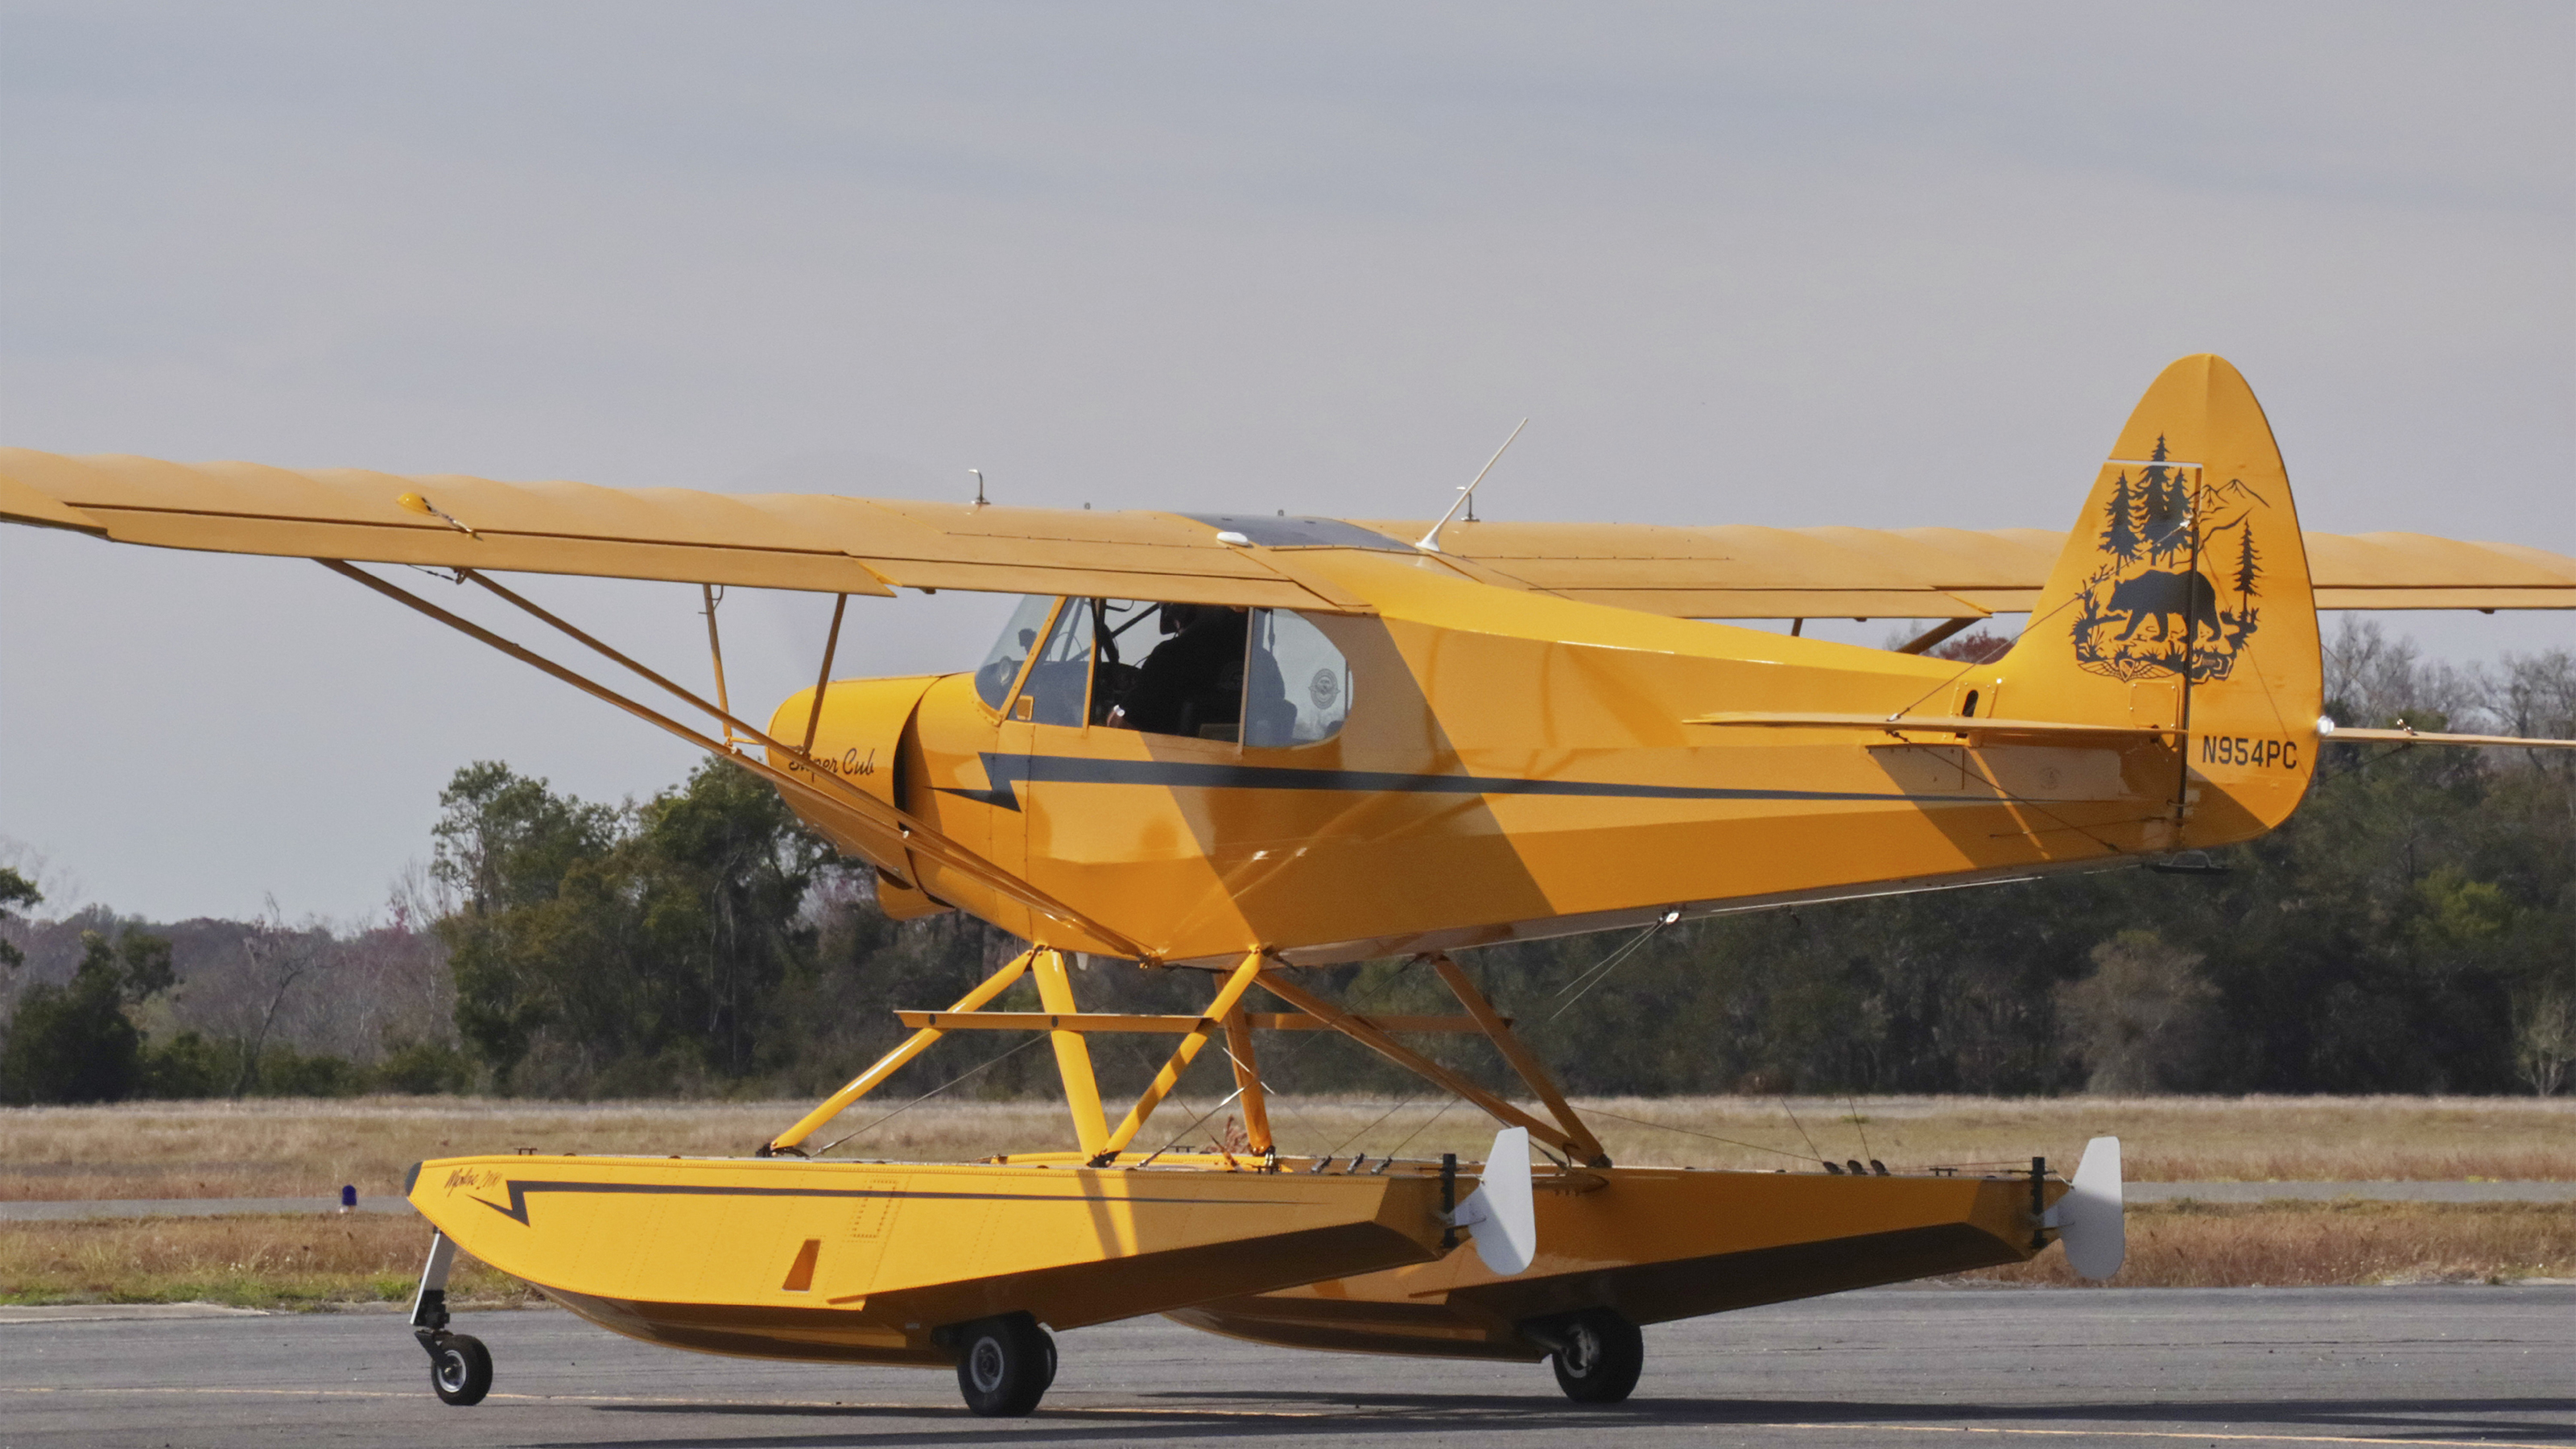 AOPA's Sweepstakes Super Cub is off for its maiden flight from Leesburg International Airport in Florida after passing its test flight and all the maintenance paperwork is complete.